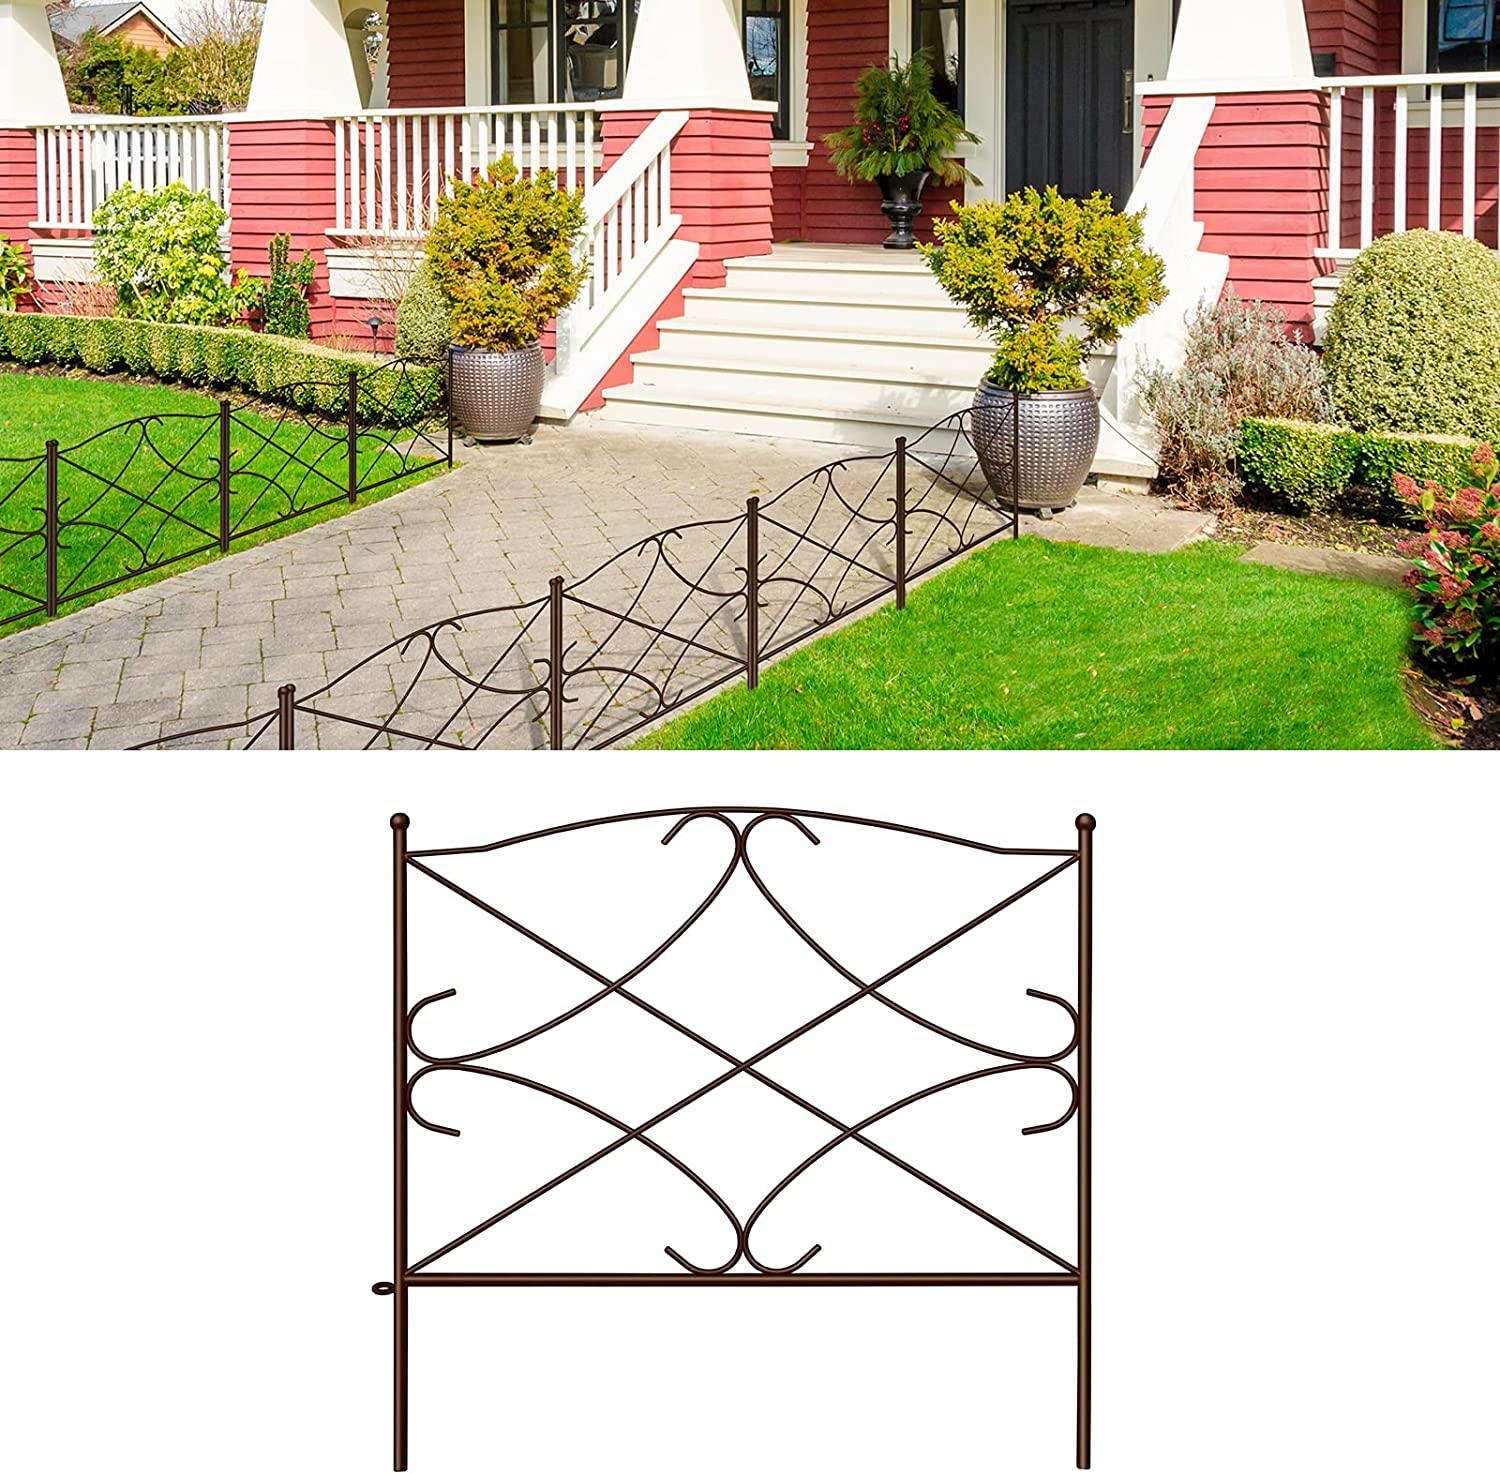 Quality inspection Amagabeli security Decorative Garden Fence 24in Outdoor Rustproof x 10ft